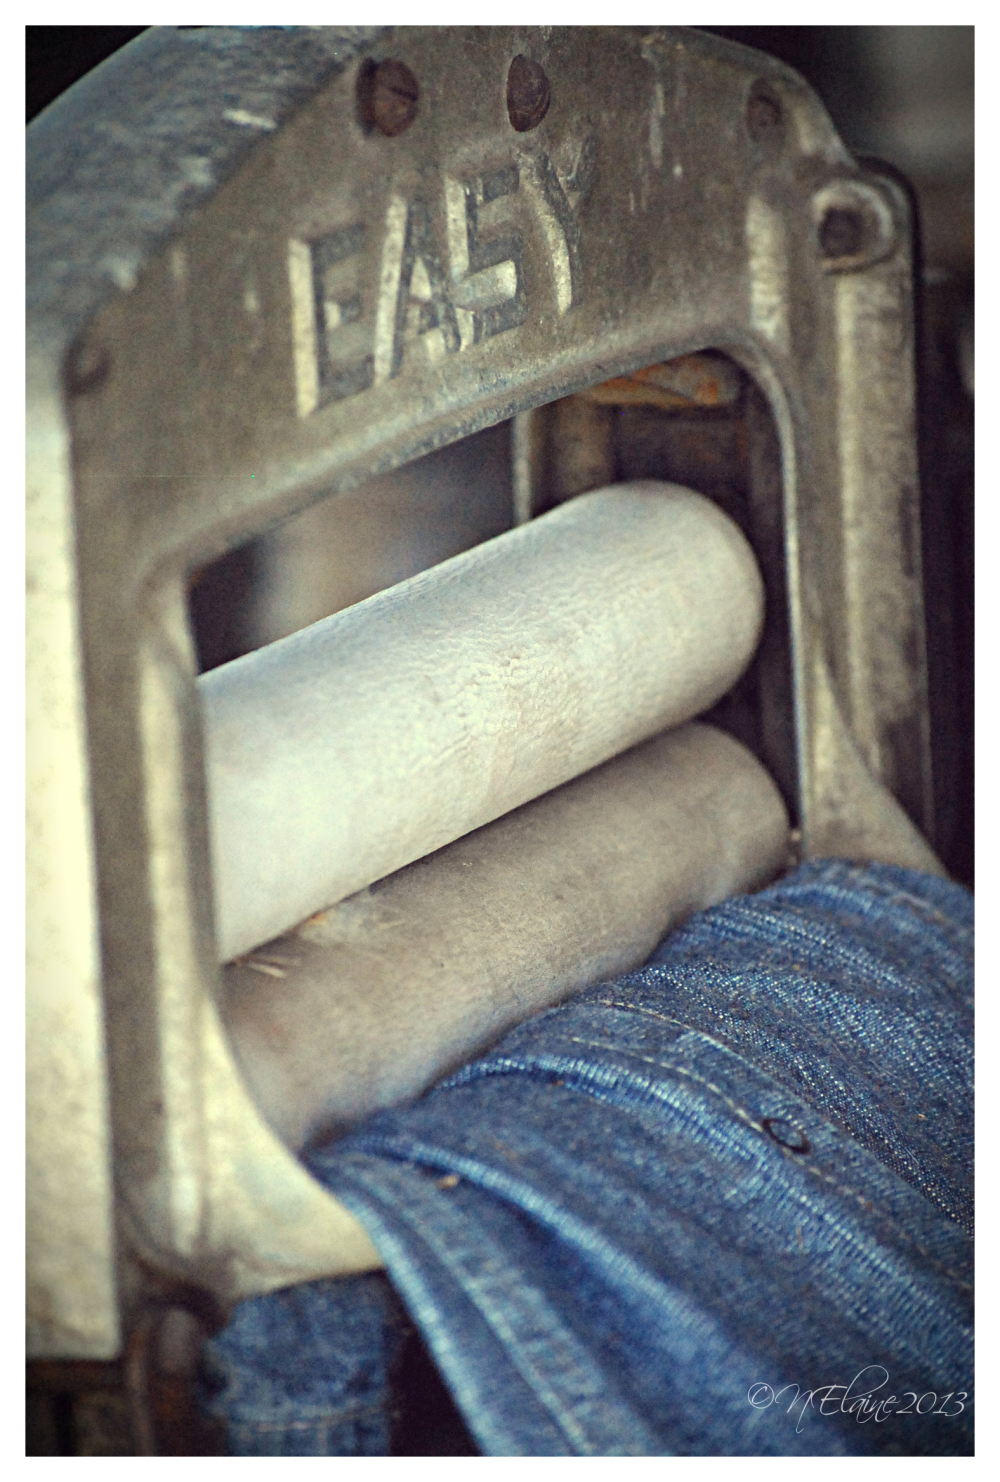 jeans in old washer